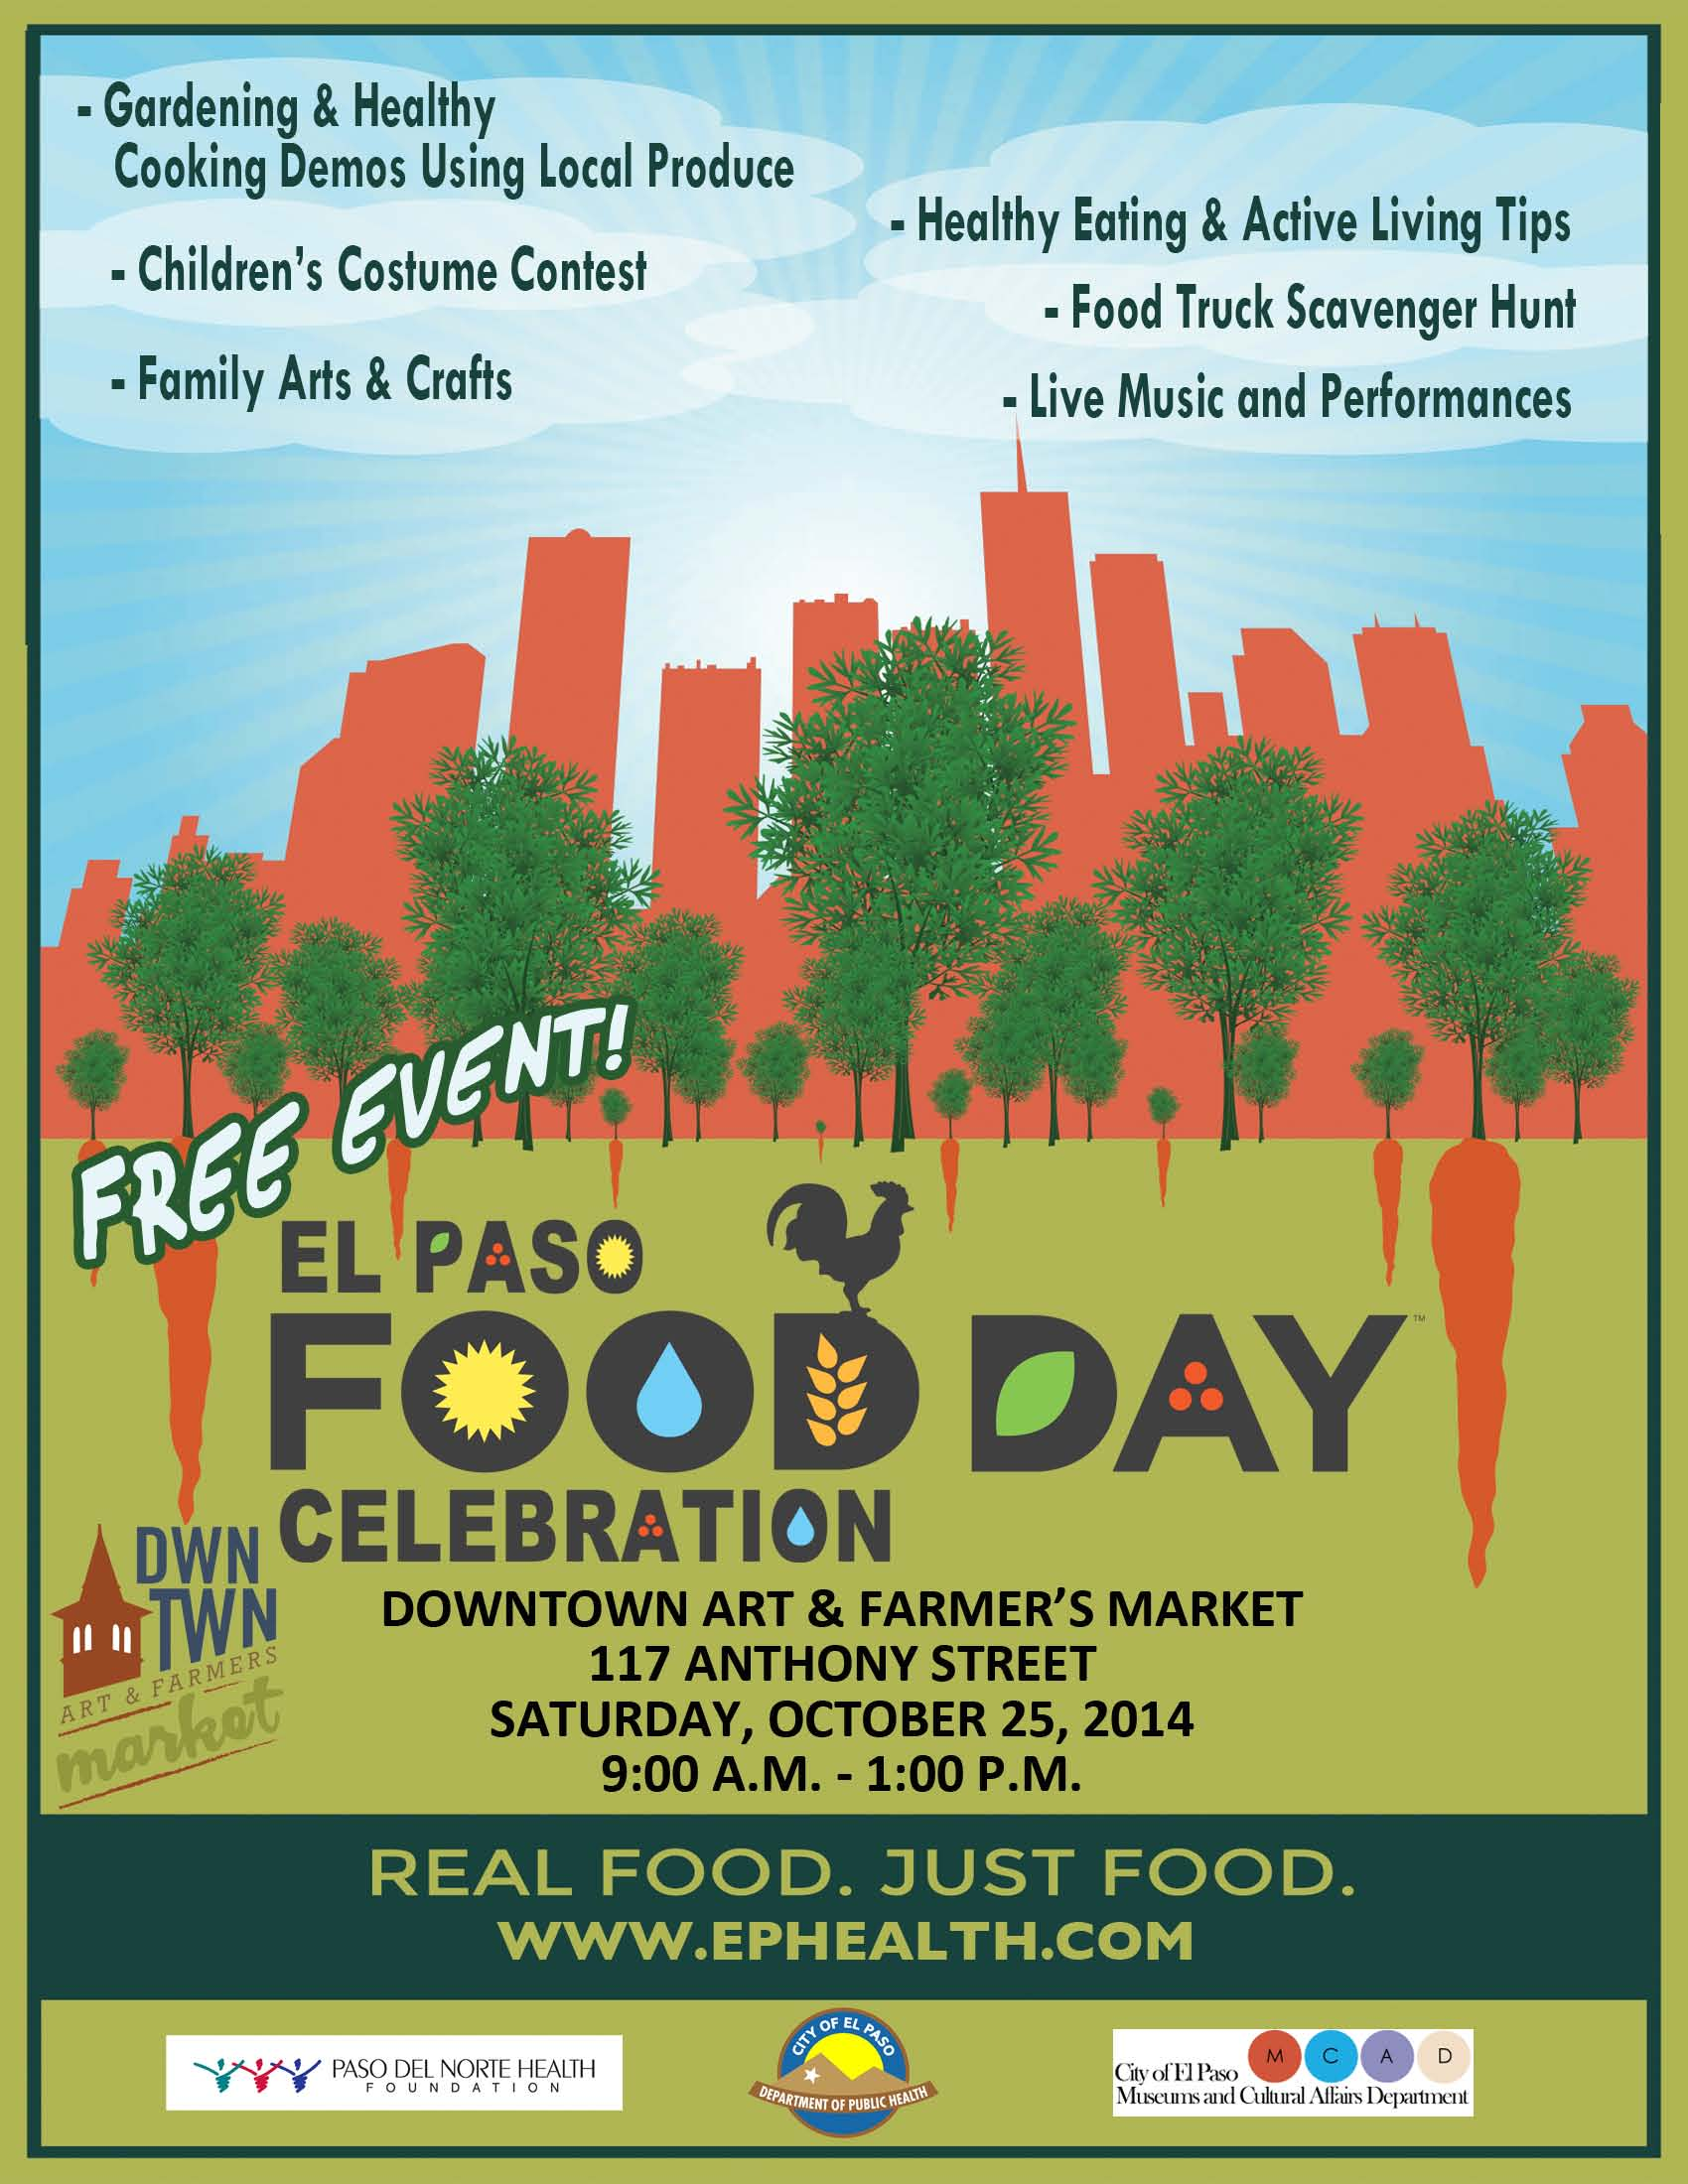 El Paso Food Day Celebration